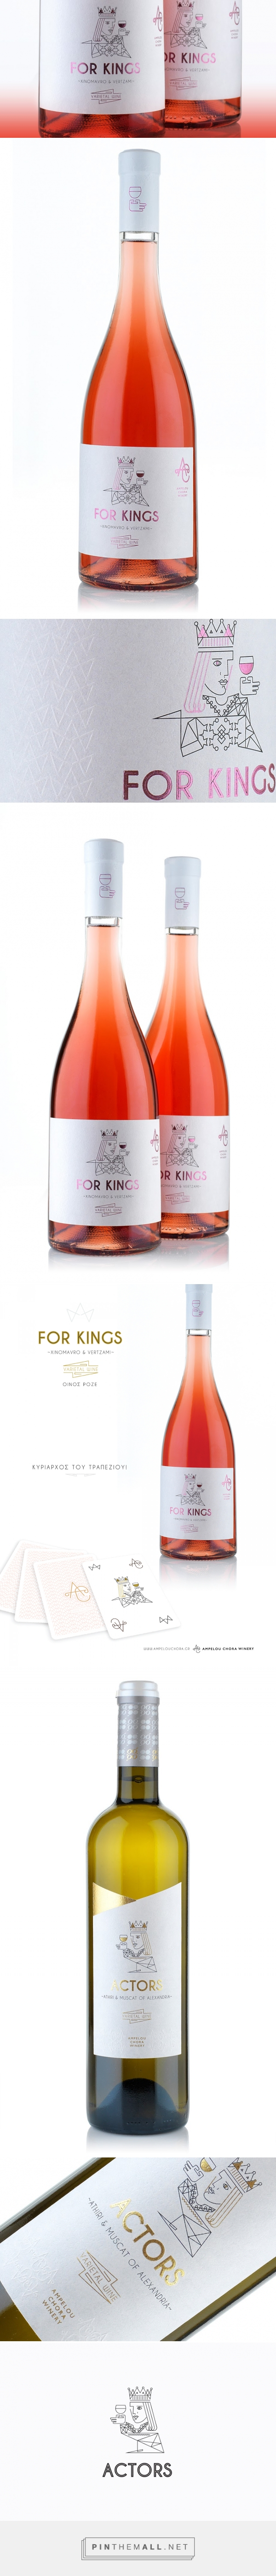 For Kings & Actors Wines - Packaging of the World - Creative Package Design Gallery - http://www.packagingoftheworld.com/2016/05/for-kings-actors-wines.html